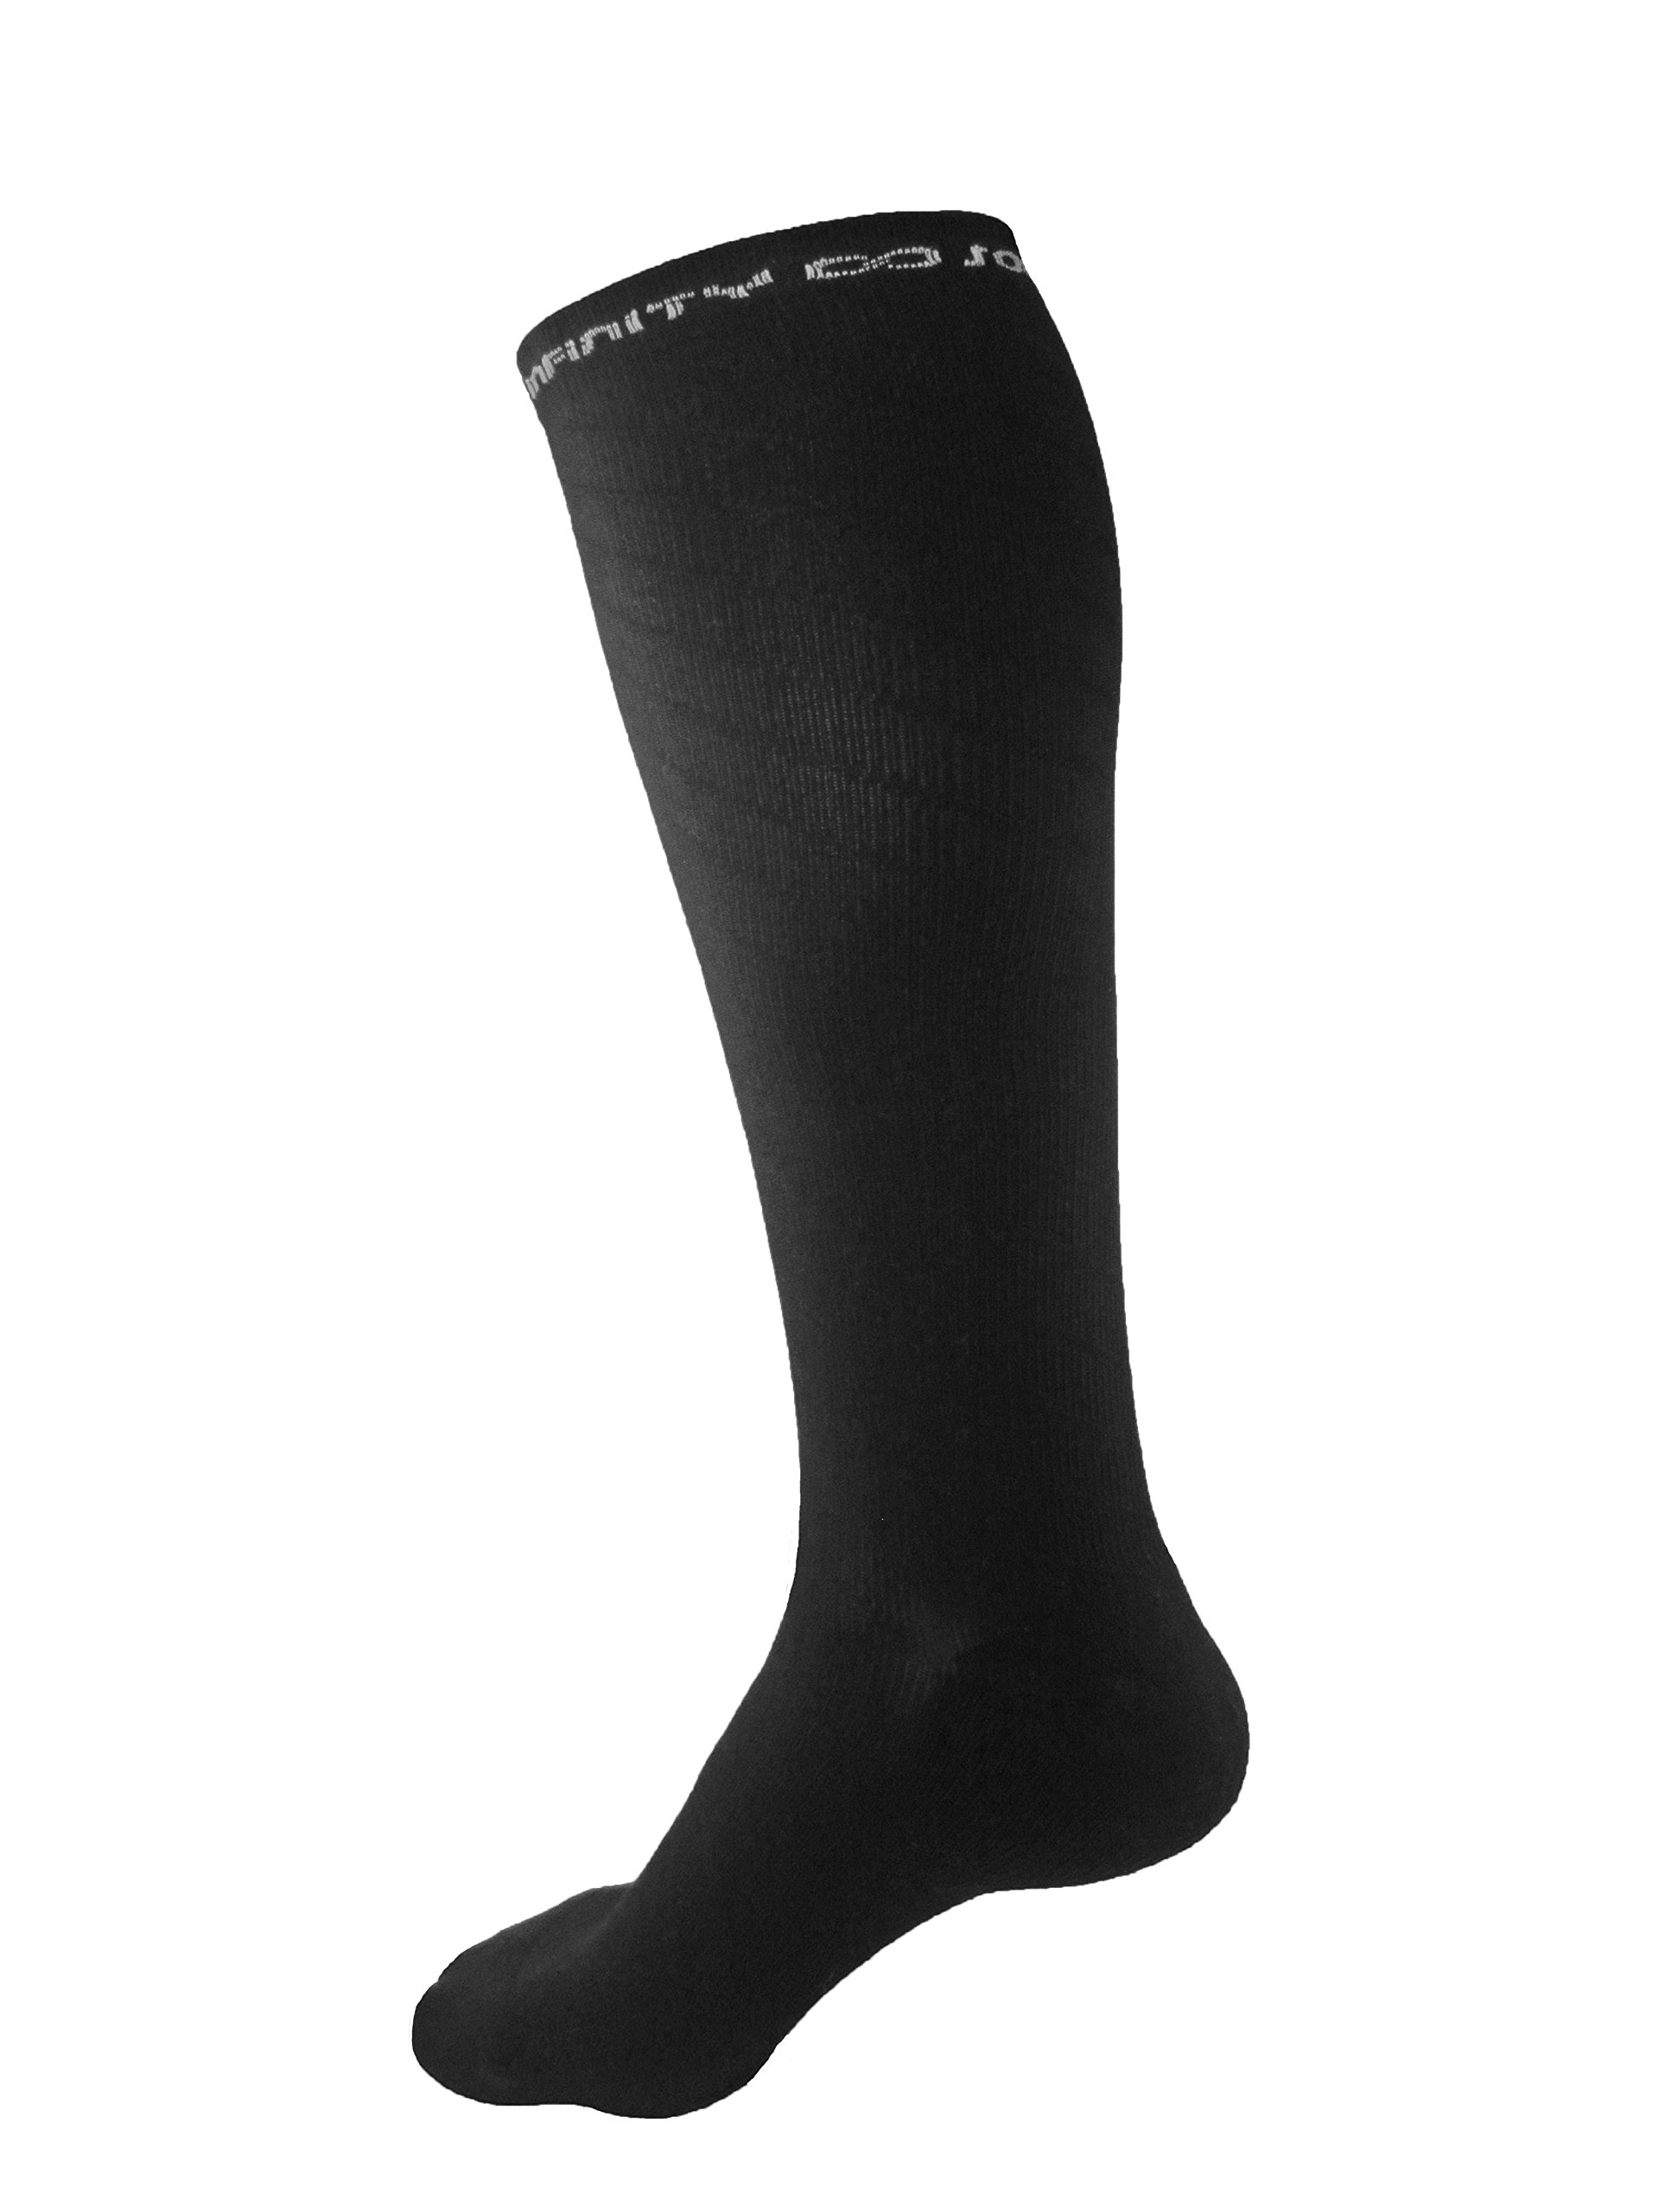 Compression Socks (Large/X Large) HIGH QUALITY Socks for Men & Women (20-30 mmhg) Graduated compression. Diagonal stitch. BEST for Running, Sports, Nurses, Recovery, Travel, Maternity, Pregnancy